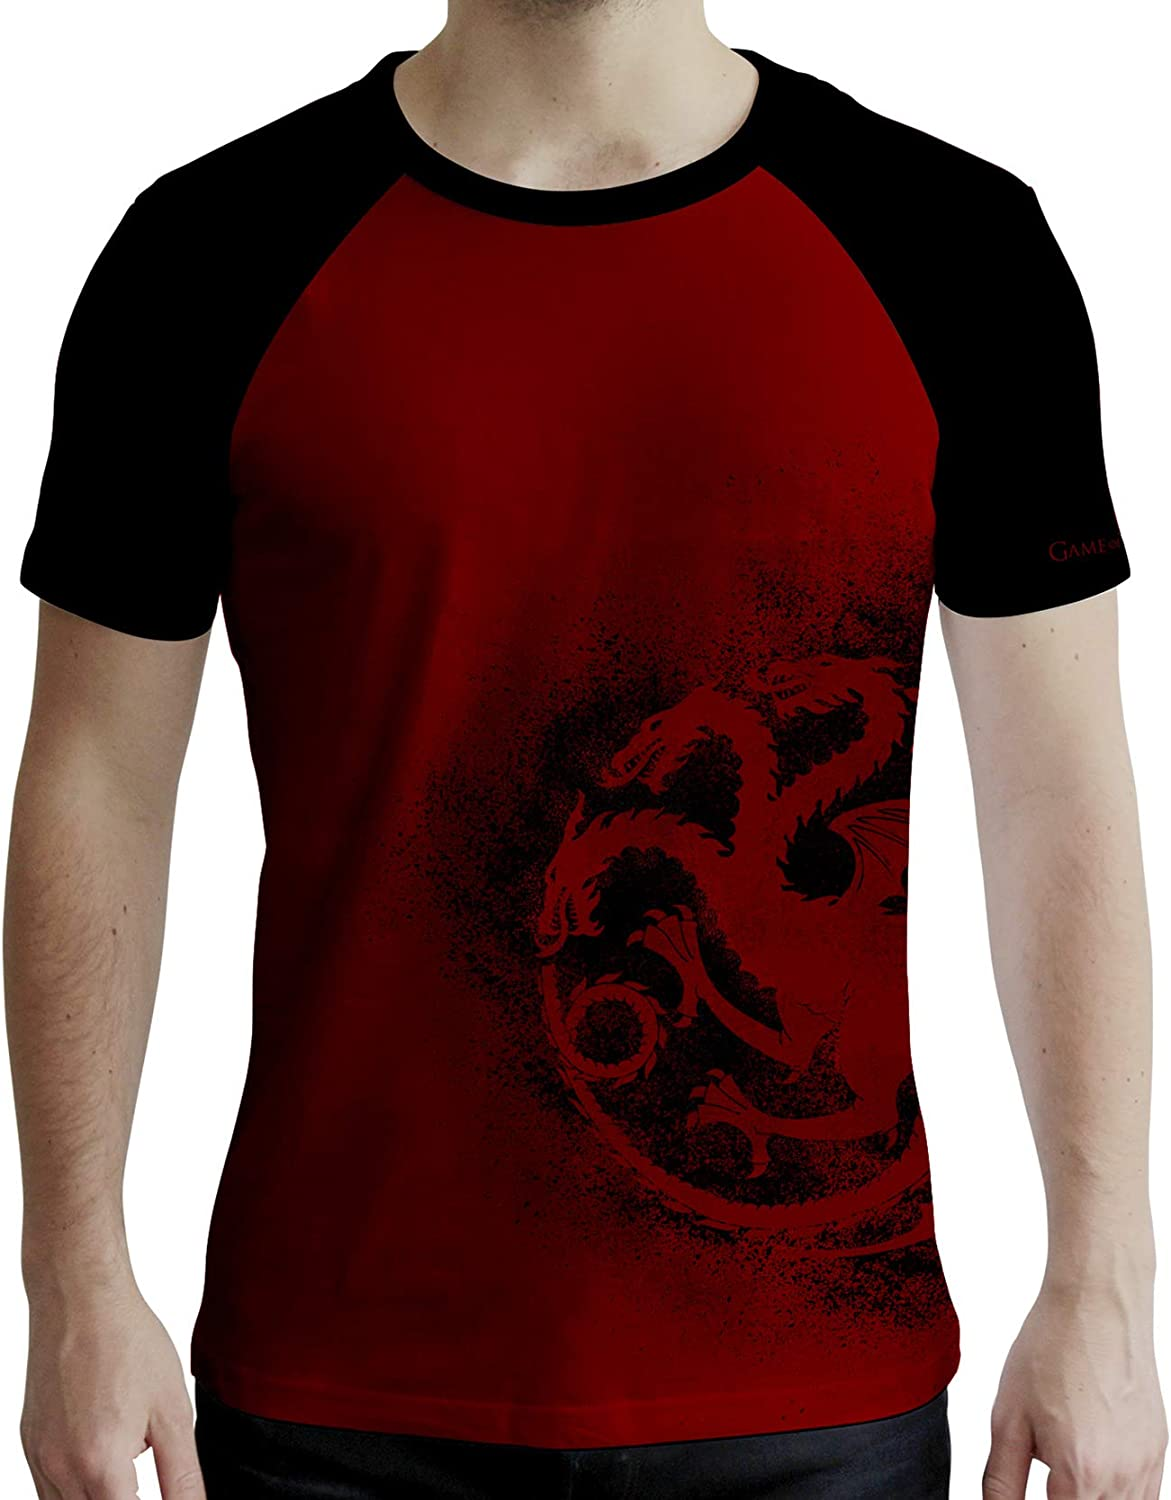 Game of Thrones ABYstyle Targaryen Uomo Rosso e Nero T-Shirt